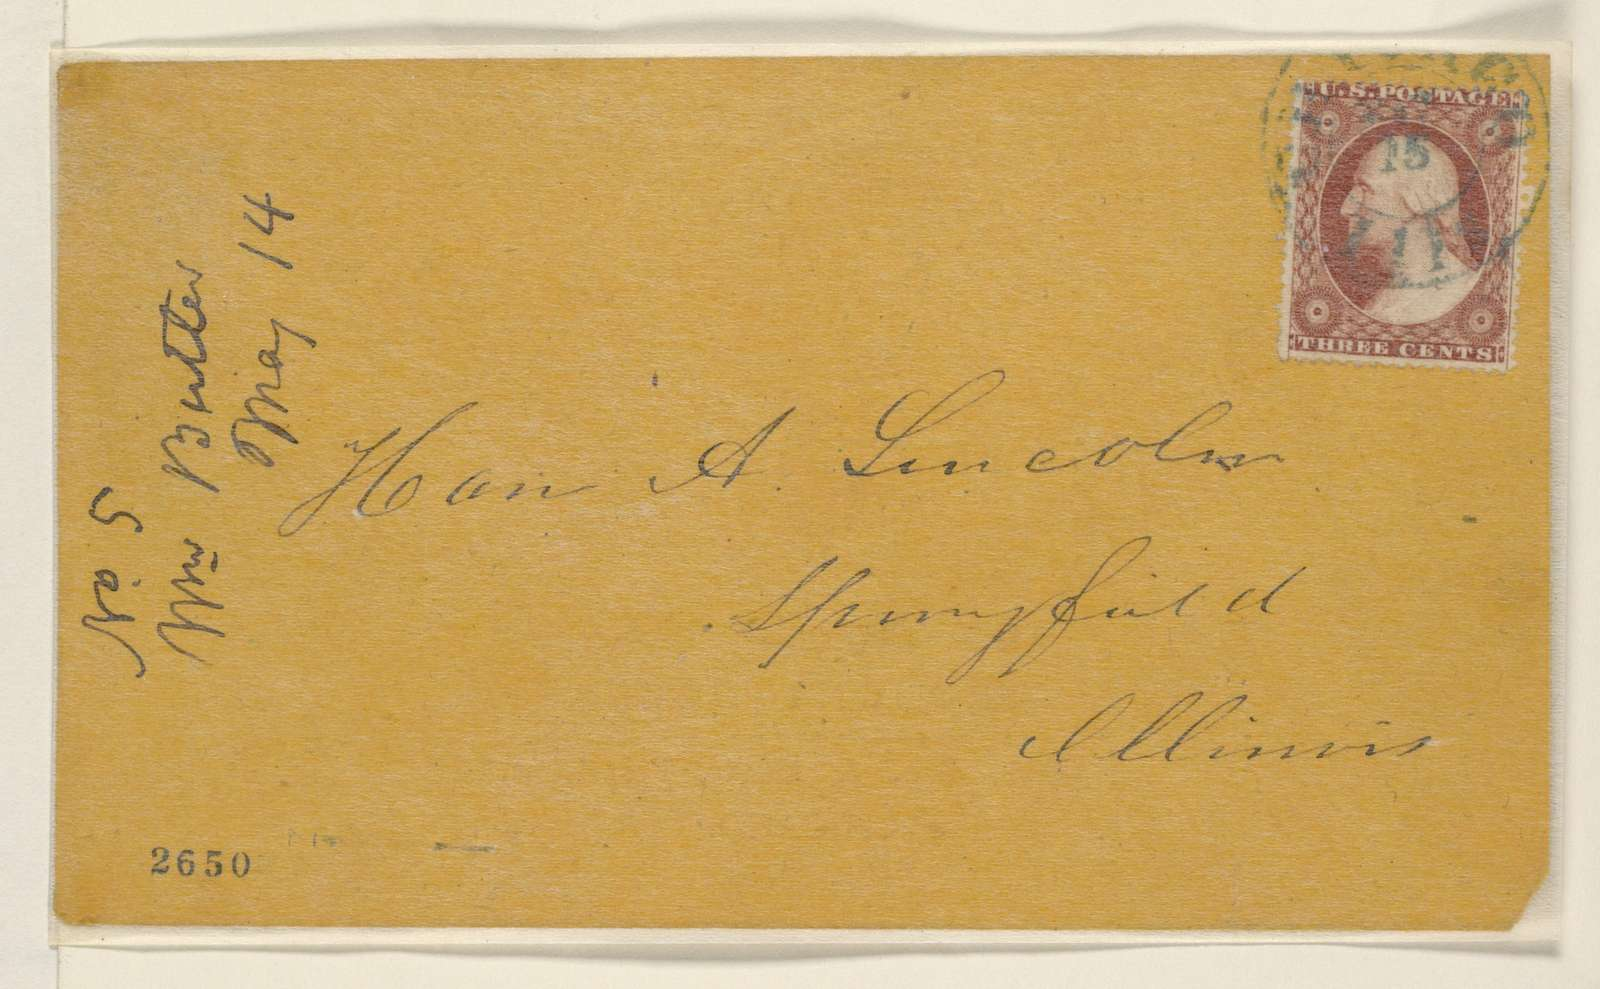 Abraham Lincoln papers: Series 1. General Correspondence. 1833-1916: William Butler to Abraham Lincoln, Monday, May 14, 1860 (Chicago convention)